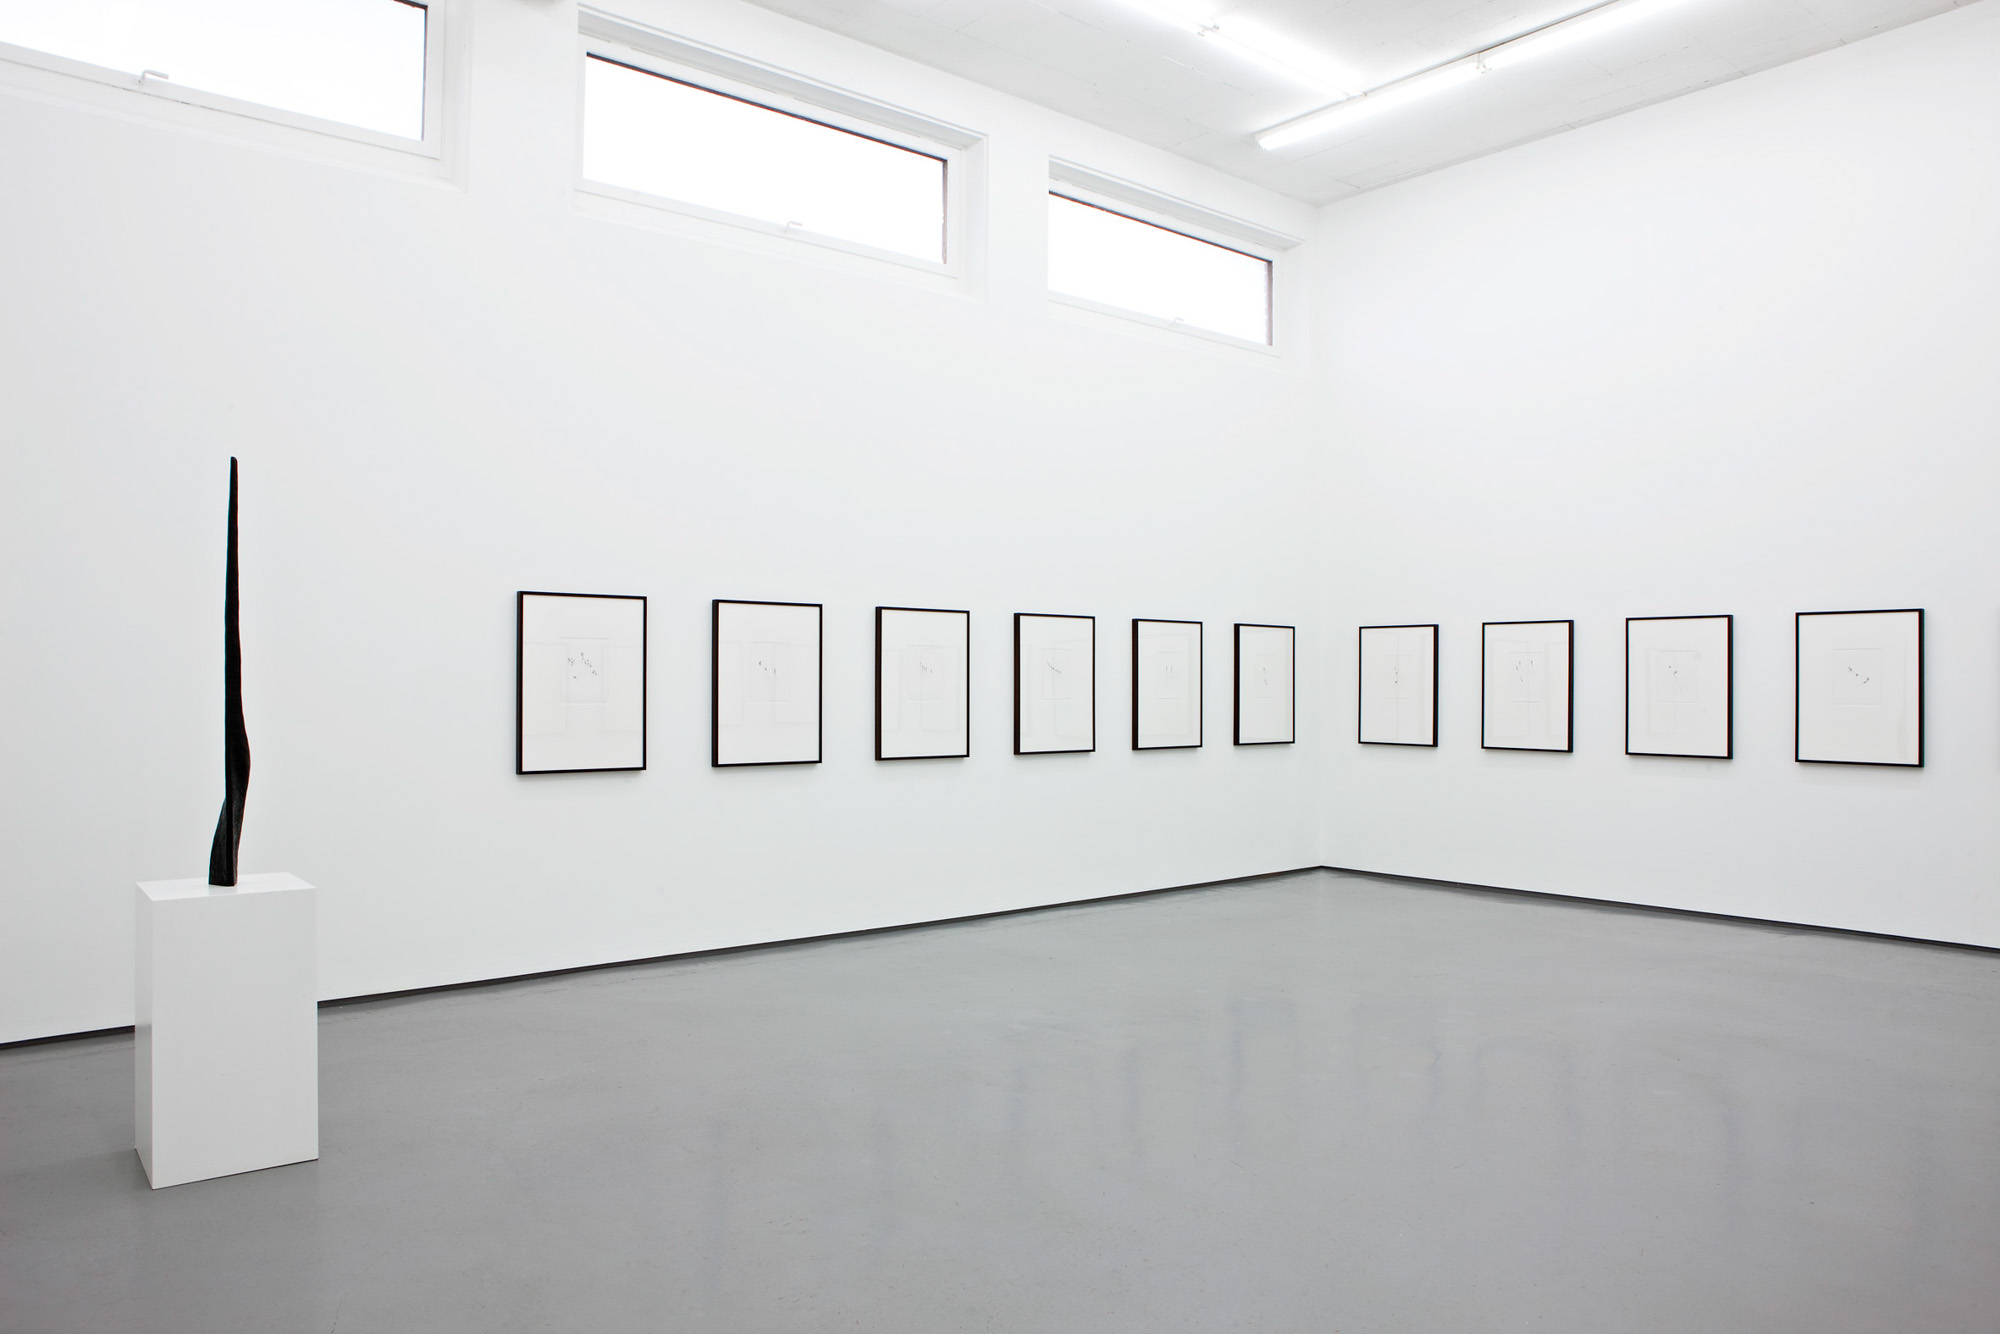 Installation view Jan Groth, New Drawings, Galleri Riis, Oslo, 2012